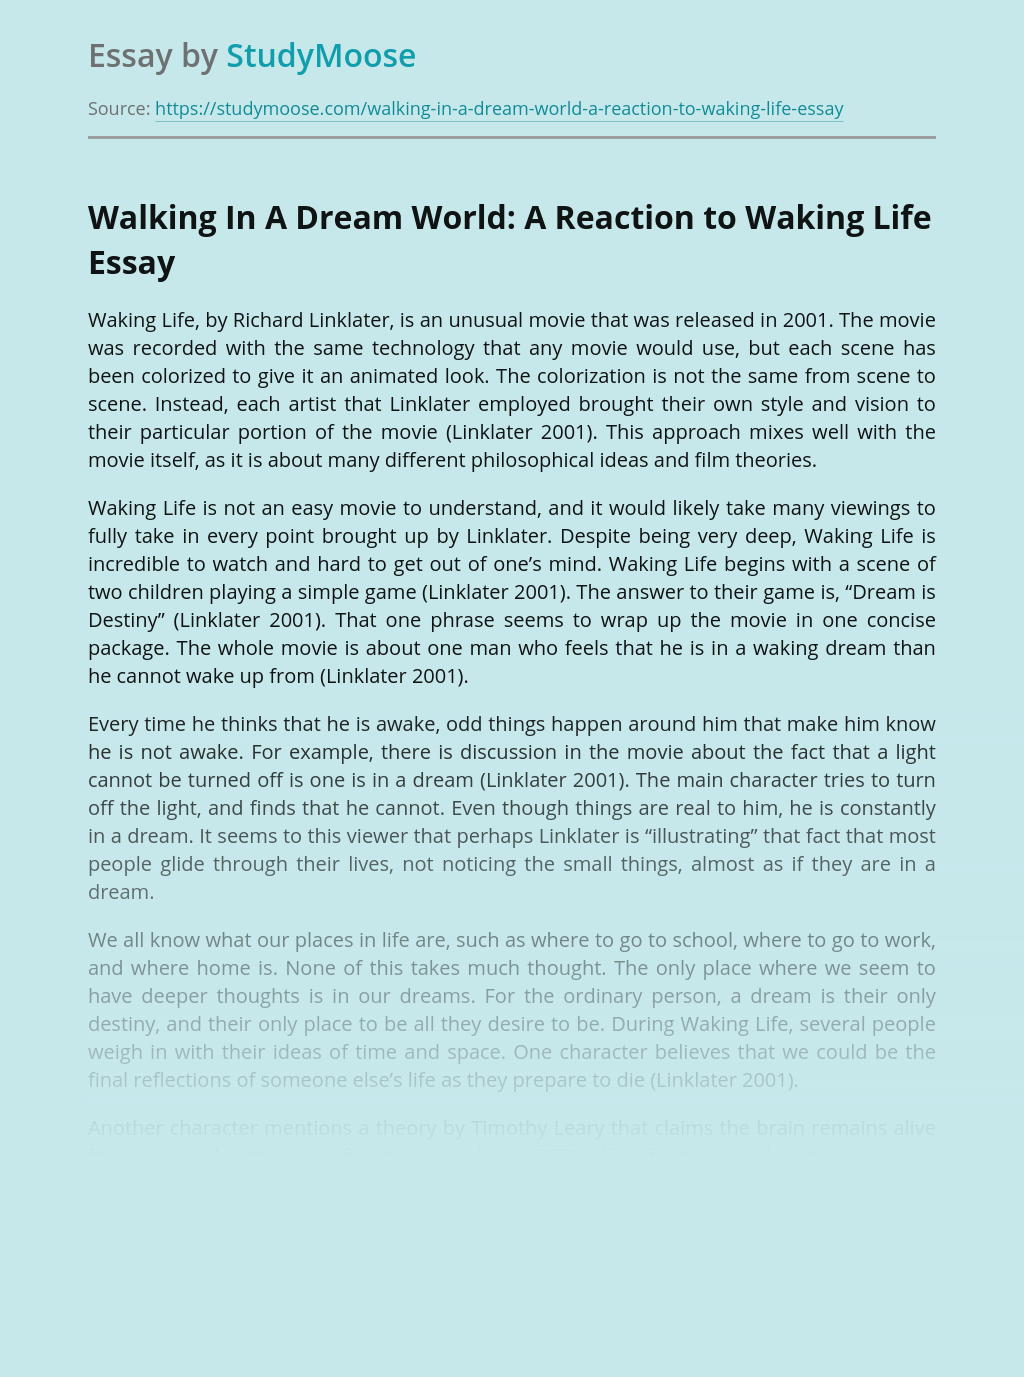 Walking In A Dream World: A Reaction to Waking Life